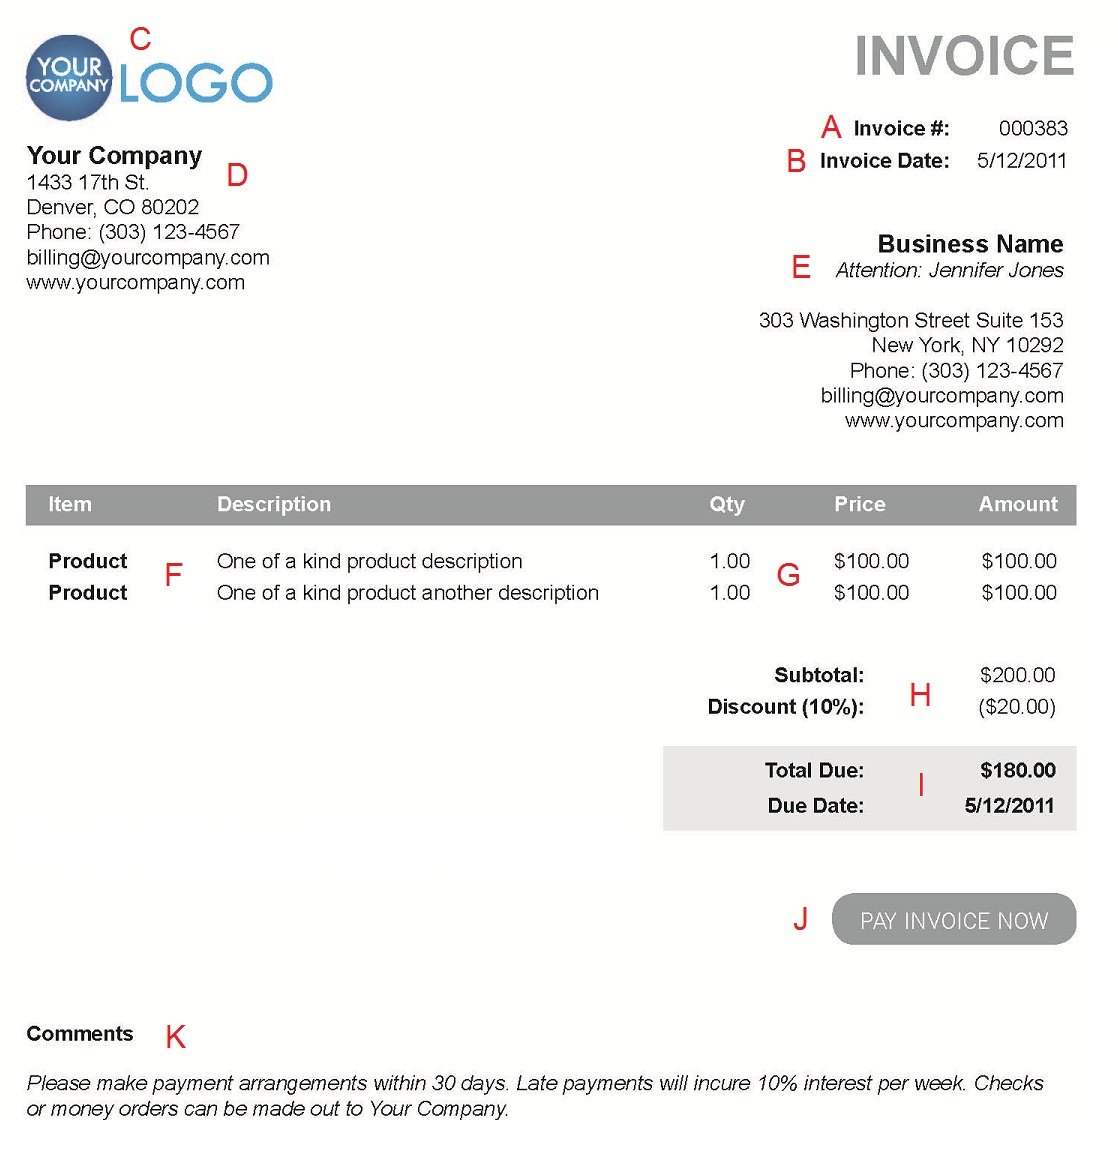 Opposenewapstandardsus  Wonderful The  Different Sections Of An Electronic Payment Invoice With Great A  With Breathtaking Book Receipt Template Also Silvine Receipt Book In Addition Returning Faulty Goods Without Receipt And Laser Receipt Printer As Well As Letter Receipt Additionally Accounting Receipts From Paysimplecom With Opposenewapstandardsus  Great The  Different Sections Of An Electronic Payment Invoice With Breathtaking A  And Wonderful Book Receipt Template Also Silvine Receipt Book In Addition Returning Faulty Goods Without Receipt From Paysimplecom